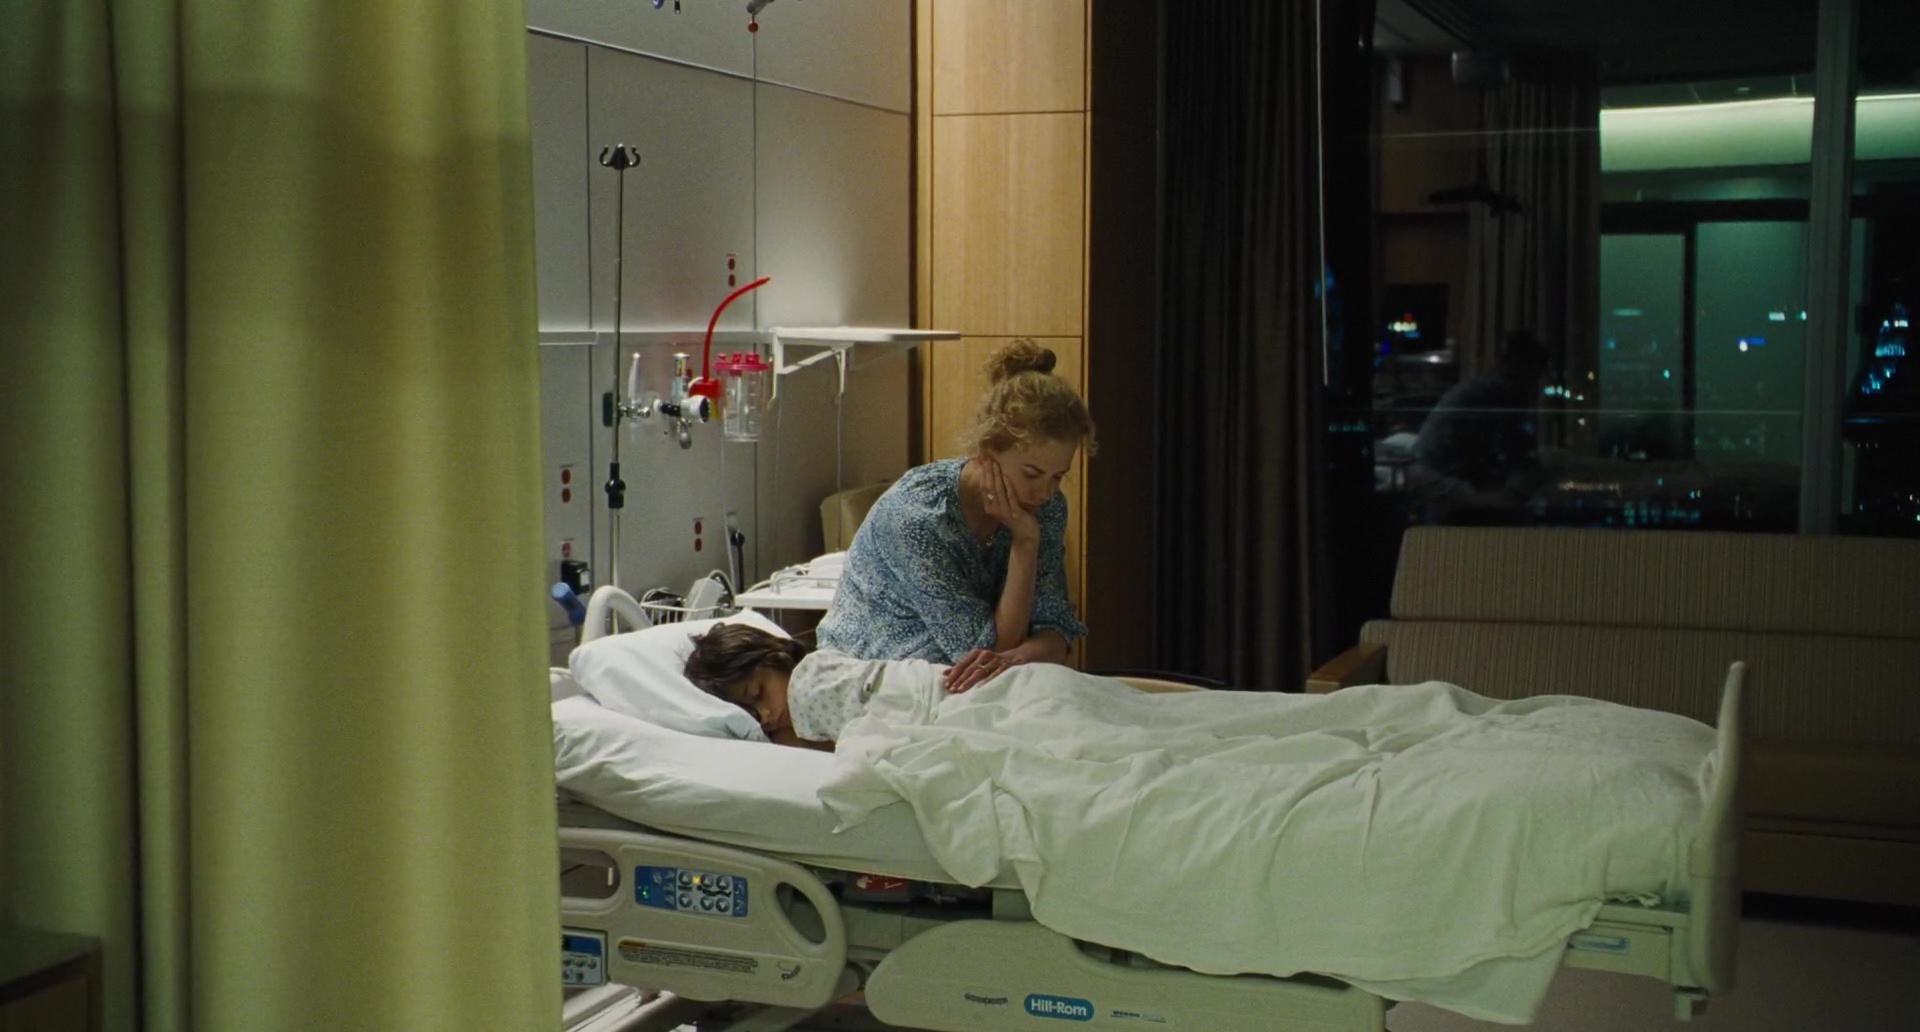 hill rom hospital bed used by sunny suljic in the killing of a